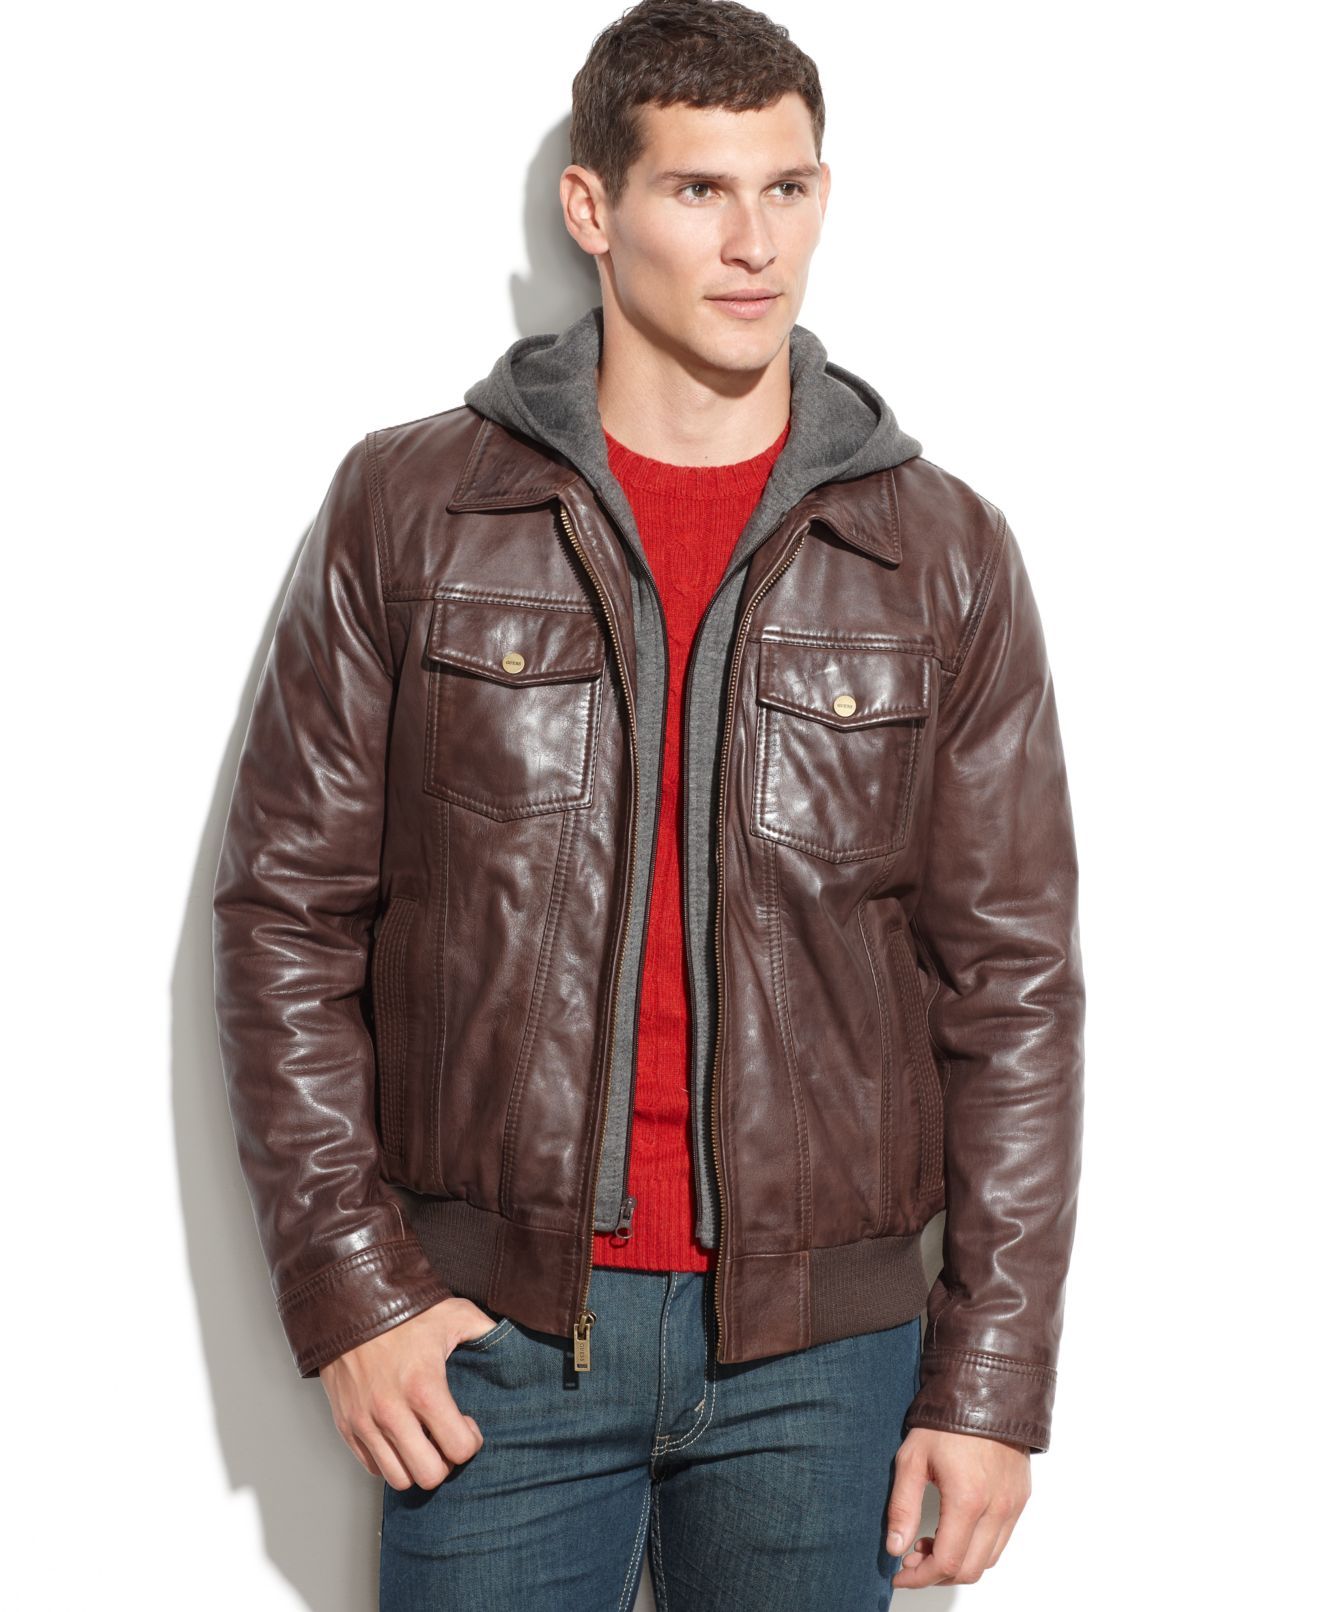 Guess Mens Leather Jacket Guess Leather Jacket With Knit